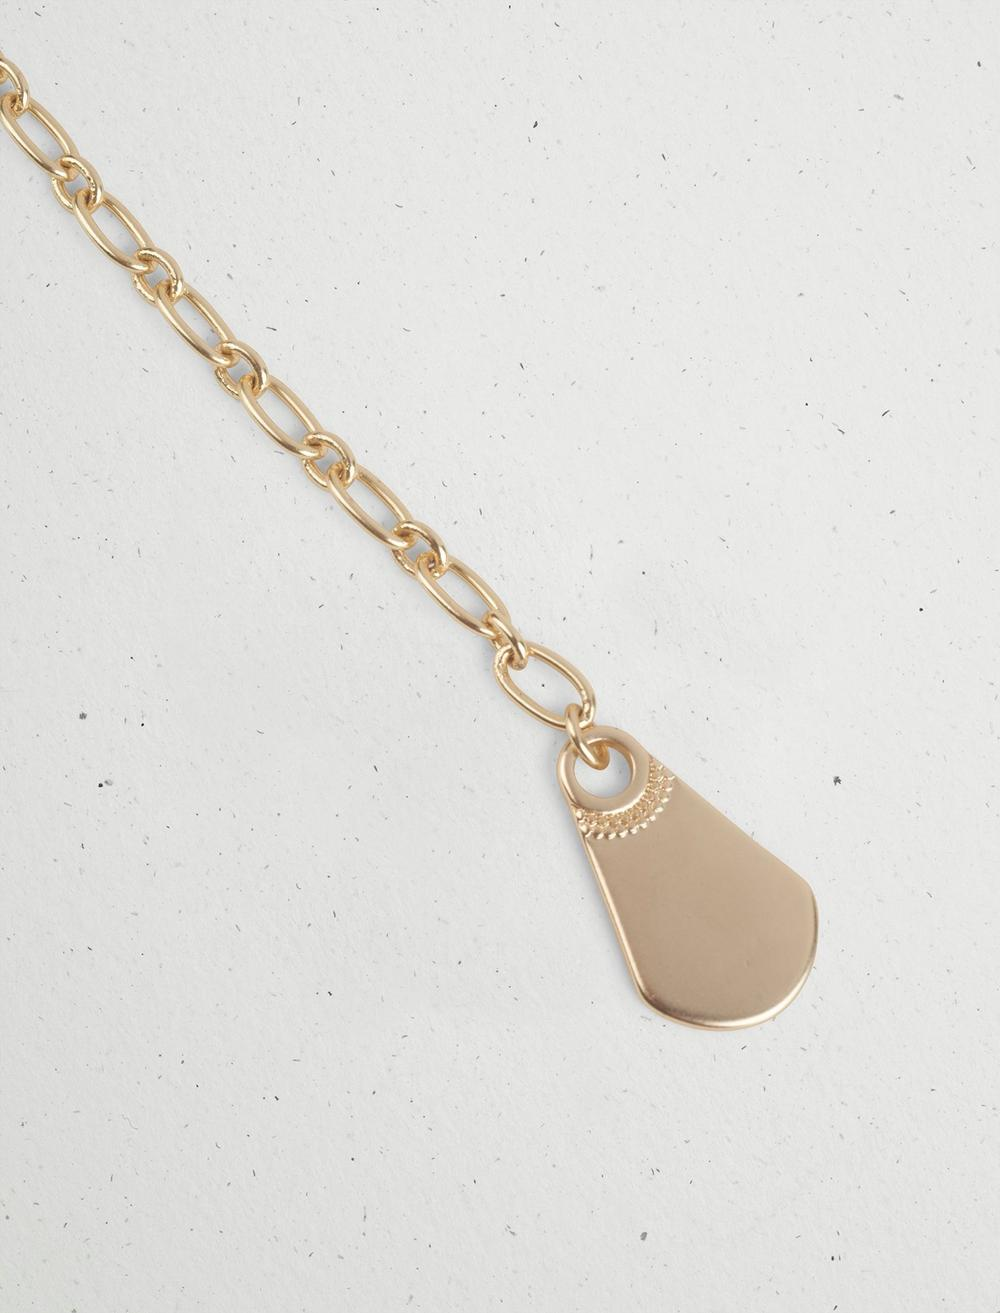 ASYMMETRICAL CHAIN Y NECKLACE, image 2